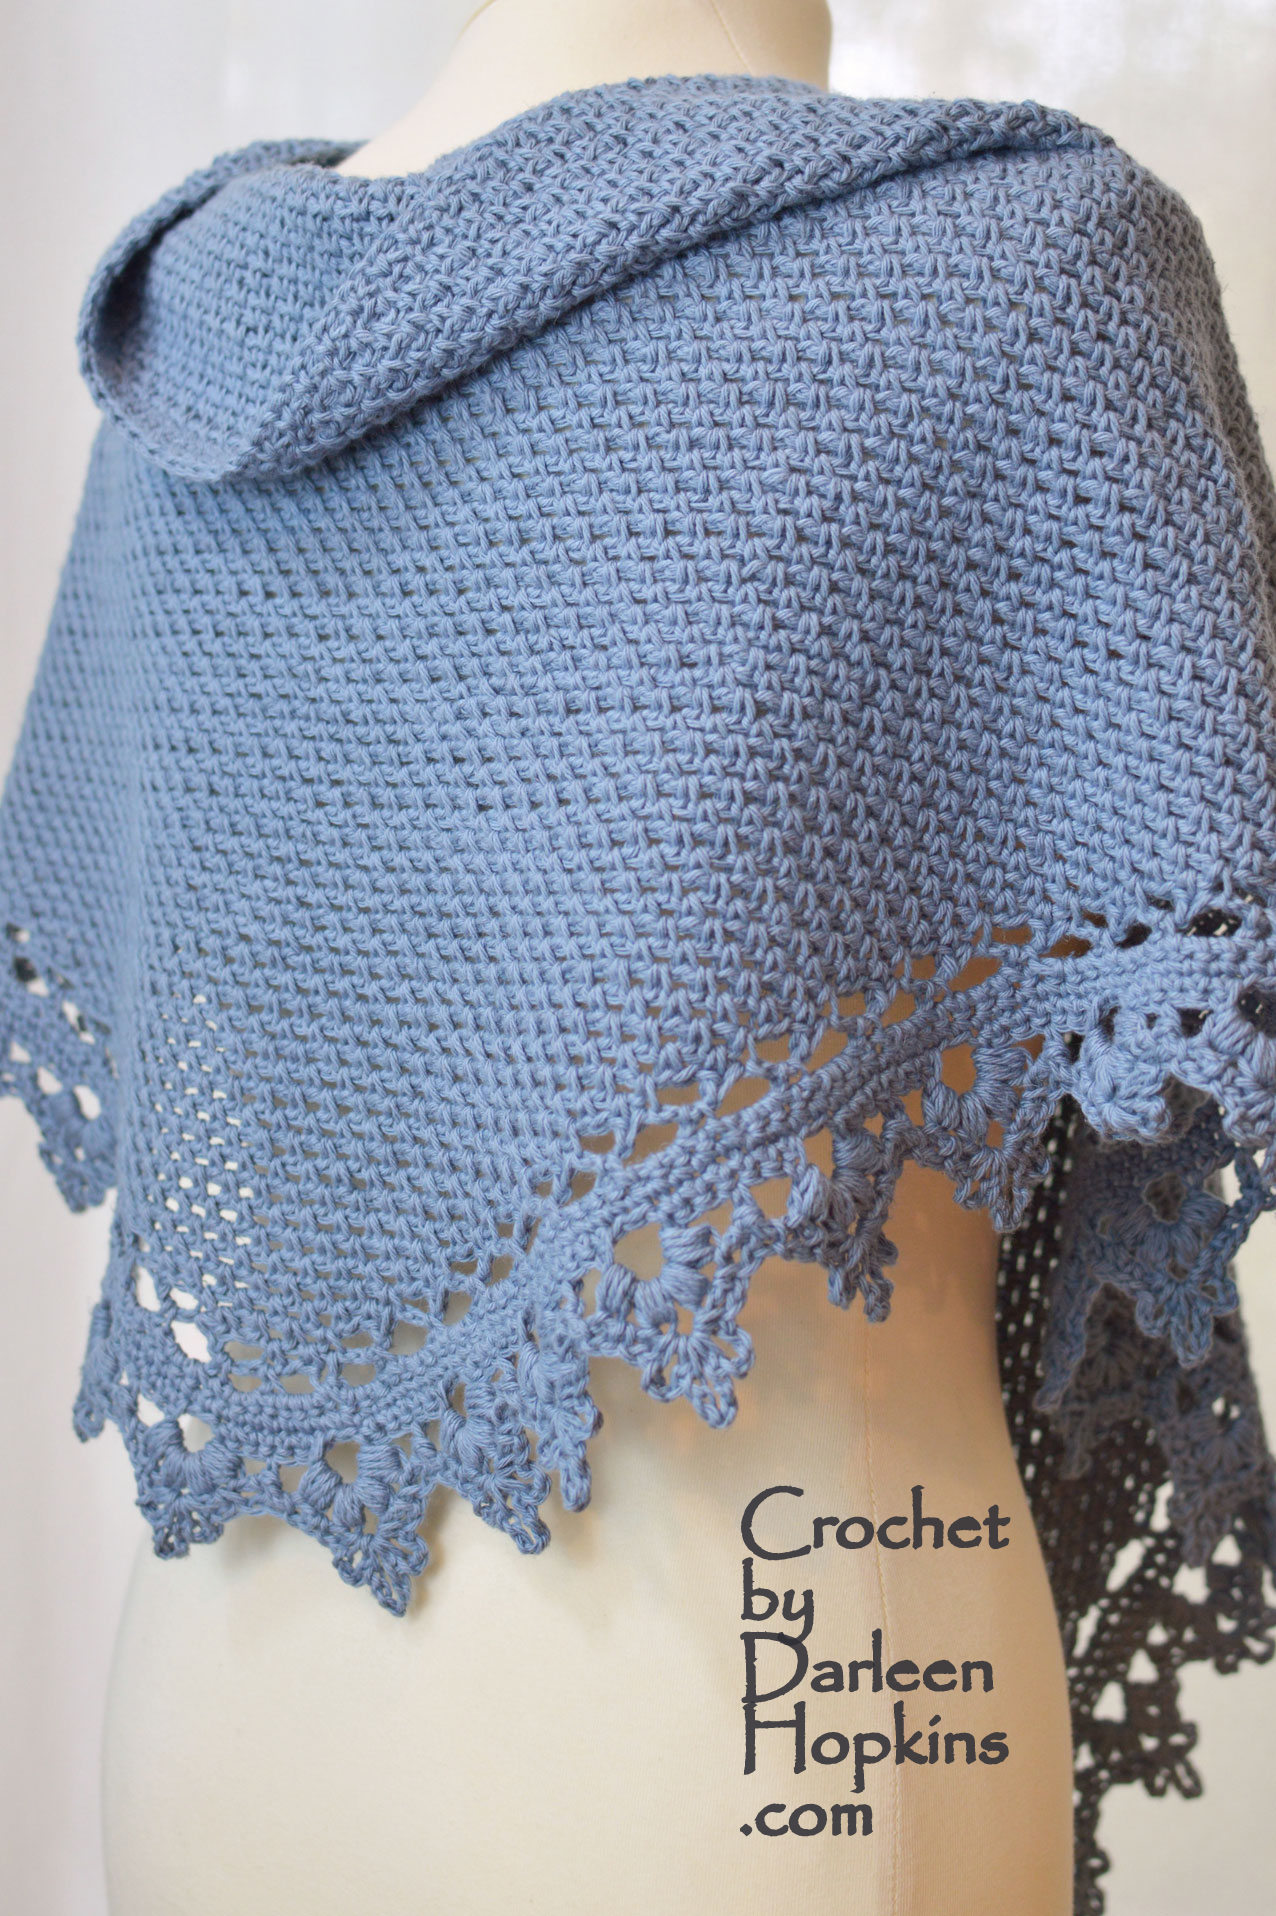 Crochet By Darleen Hopkins Crochet Tips Tricks And Patterns